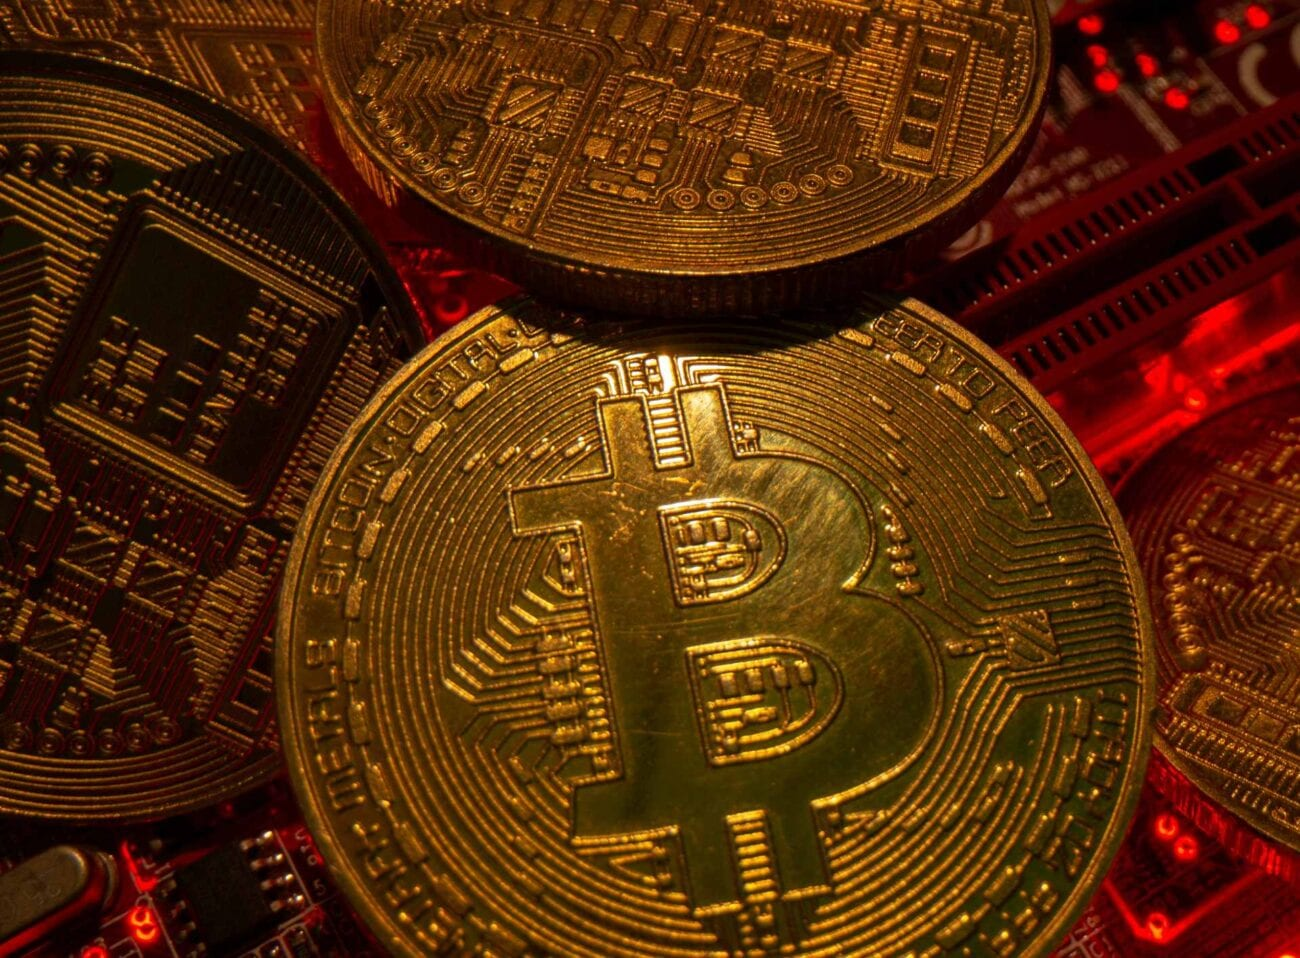 Bitcoin is not going anymore. Find out why you should invest in Bitcoin and all the various things you should keep in mind while investing.